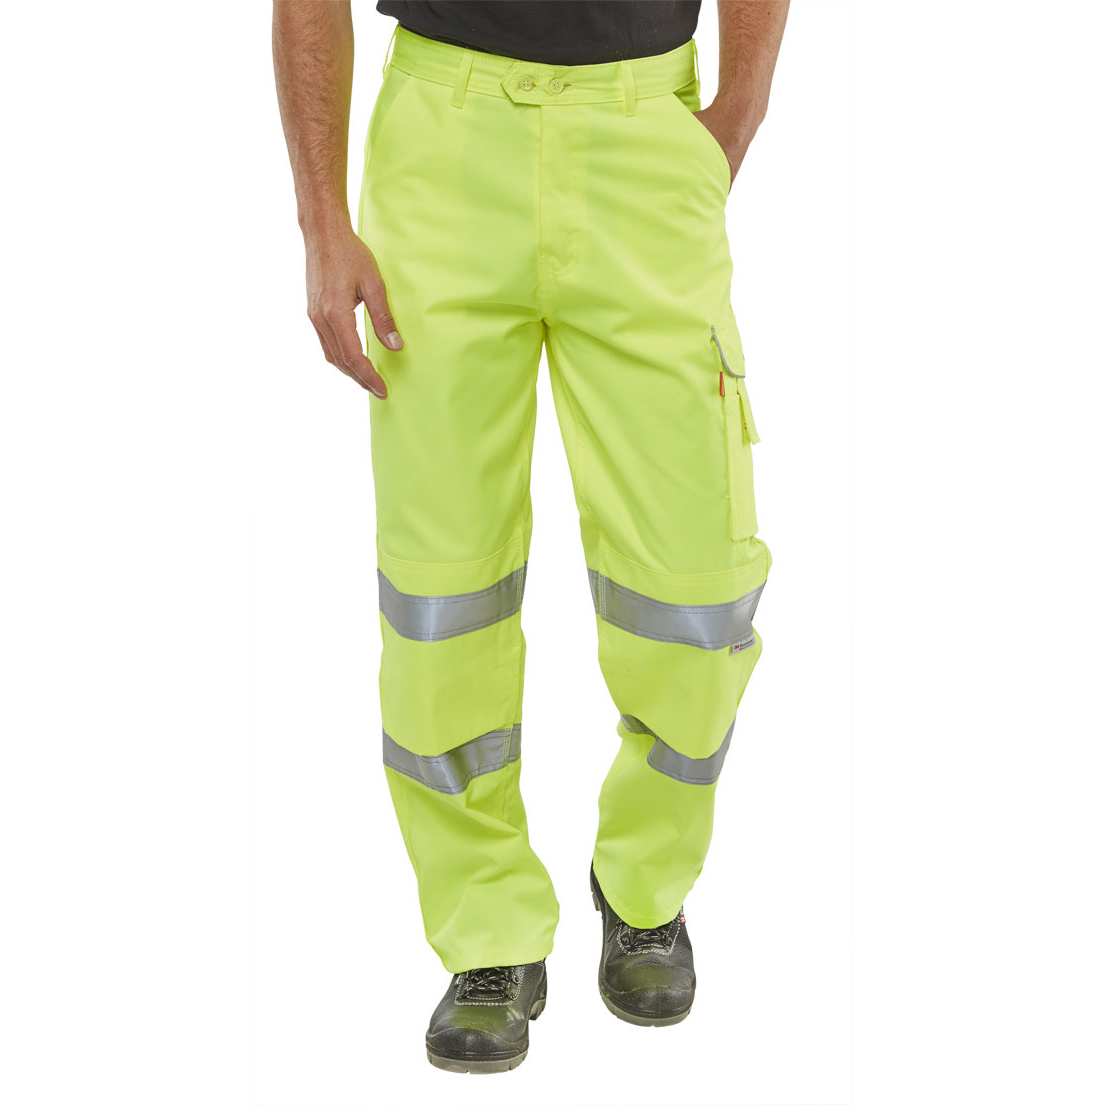 BSeen Trousers Polycotton Hi-Vis EN471 Saturn Yellow 46 Ref PCTENSY46 Up to 3 Day Leadtime